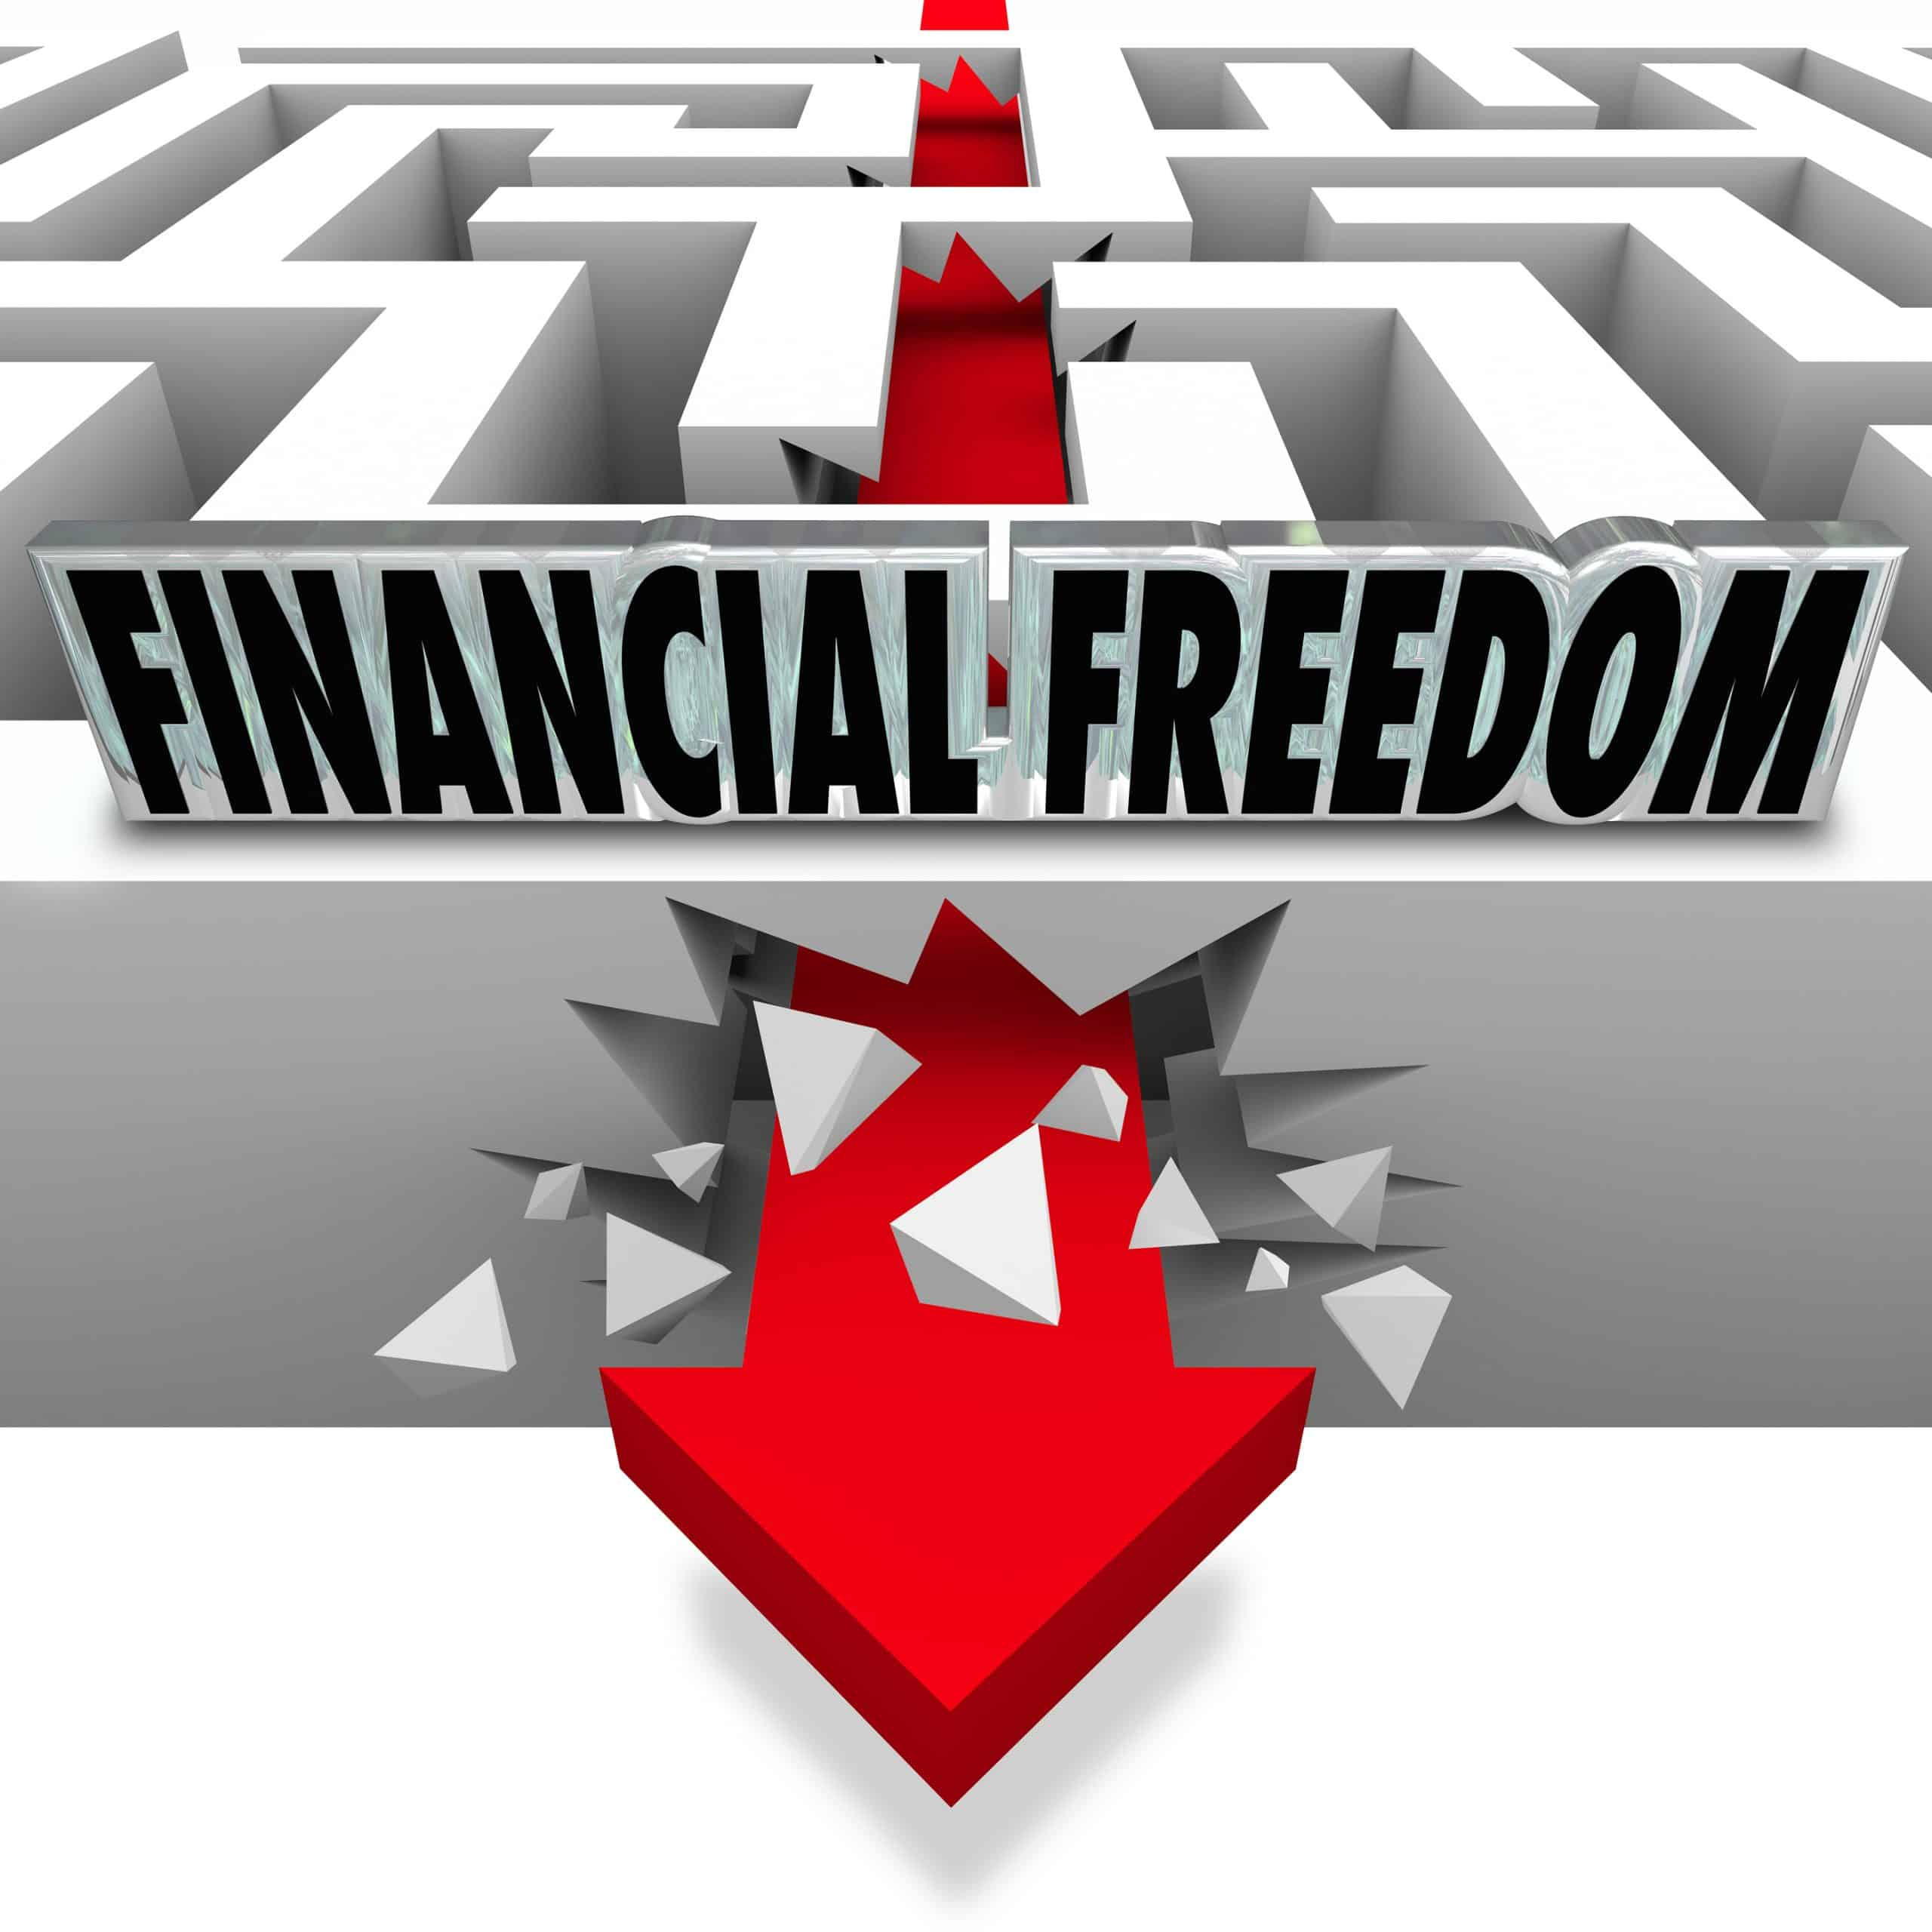 The words Financial Freedom over an arrow breaking through a maz